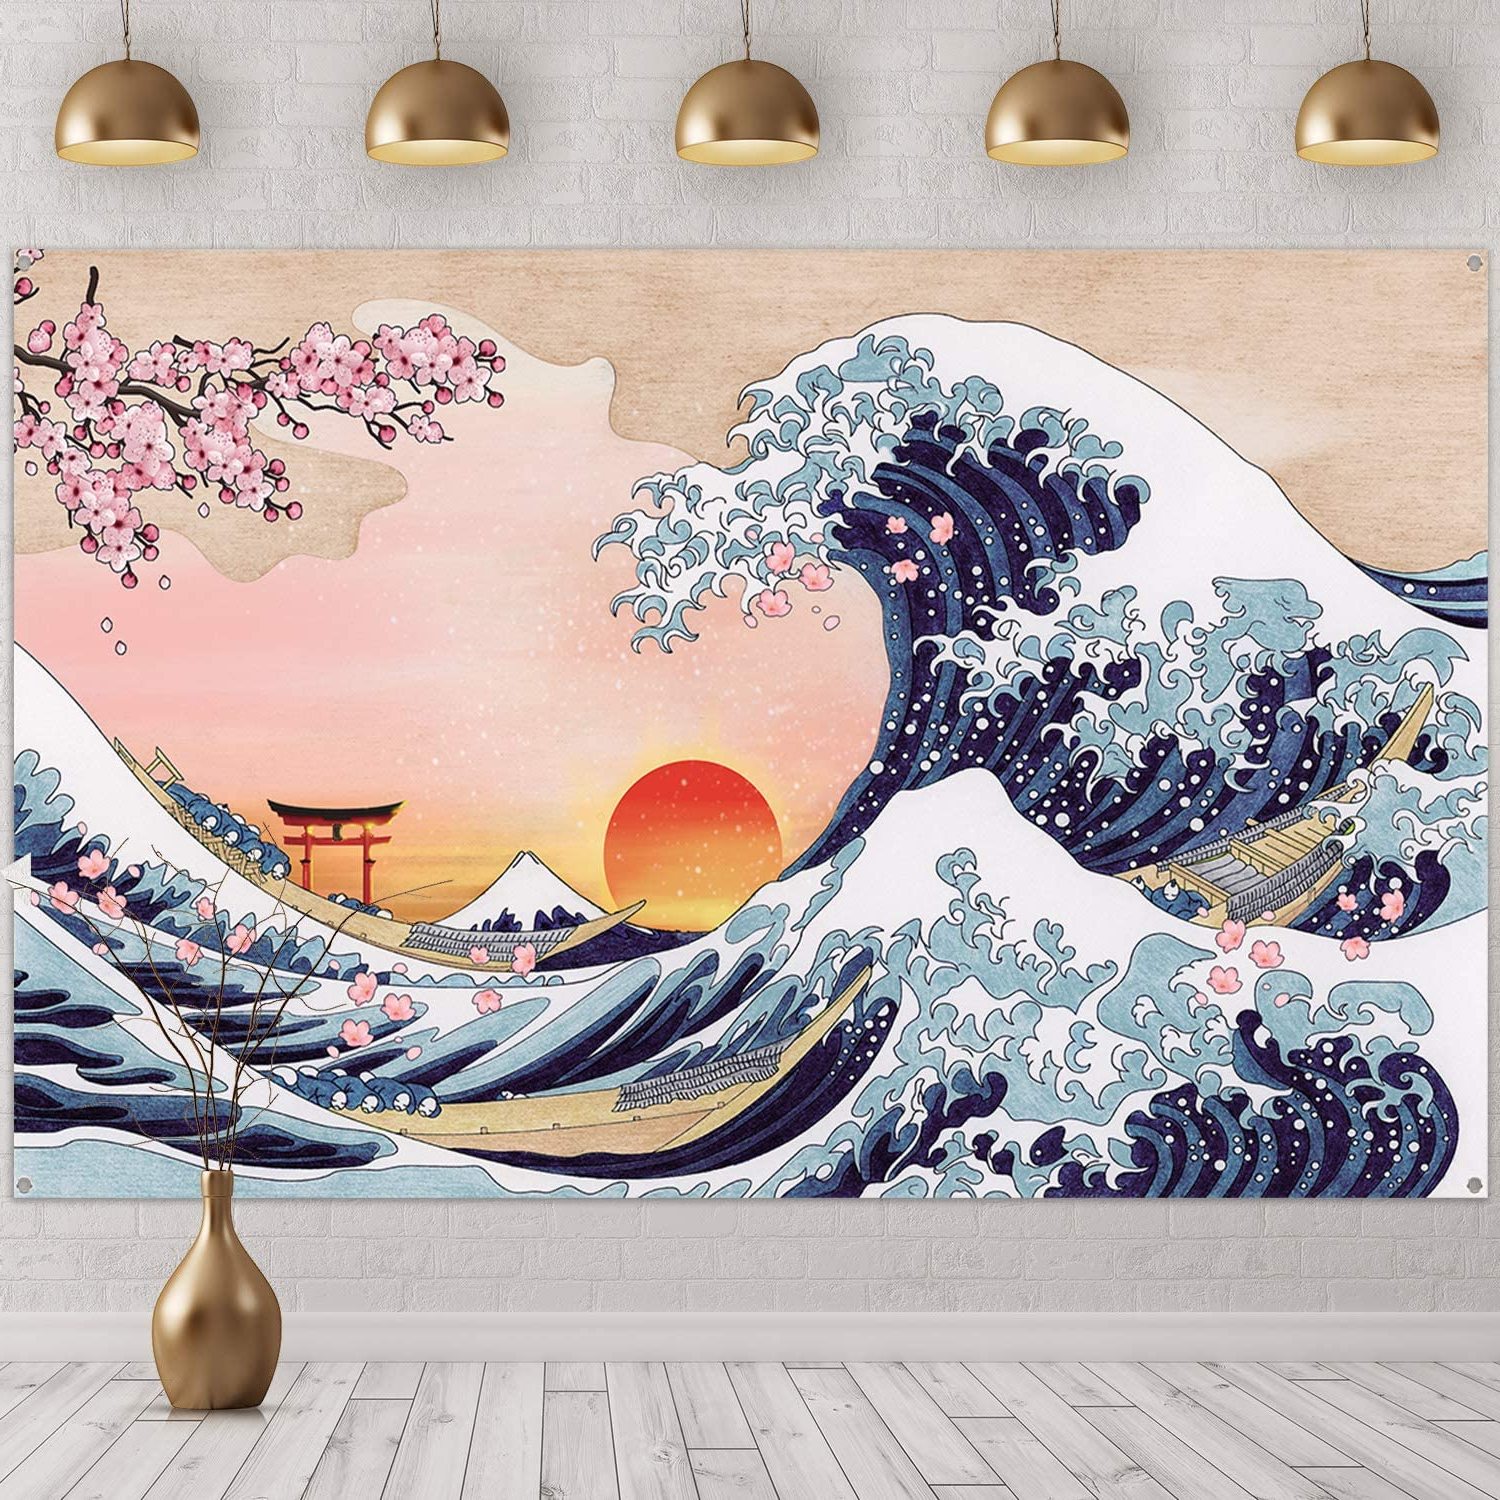 Blended Fabric Spring Party Wall Hangings Inside Latest Great Wave Wall Hanging Ocean Wave Photo Banner Japanese Kanagawa Backdrop Sunset Cherry Blossom Art Nature Background For Japanese Party Wall Home (View 10 of 20)